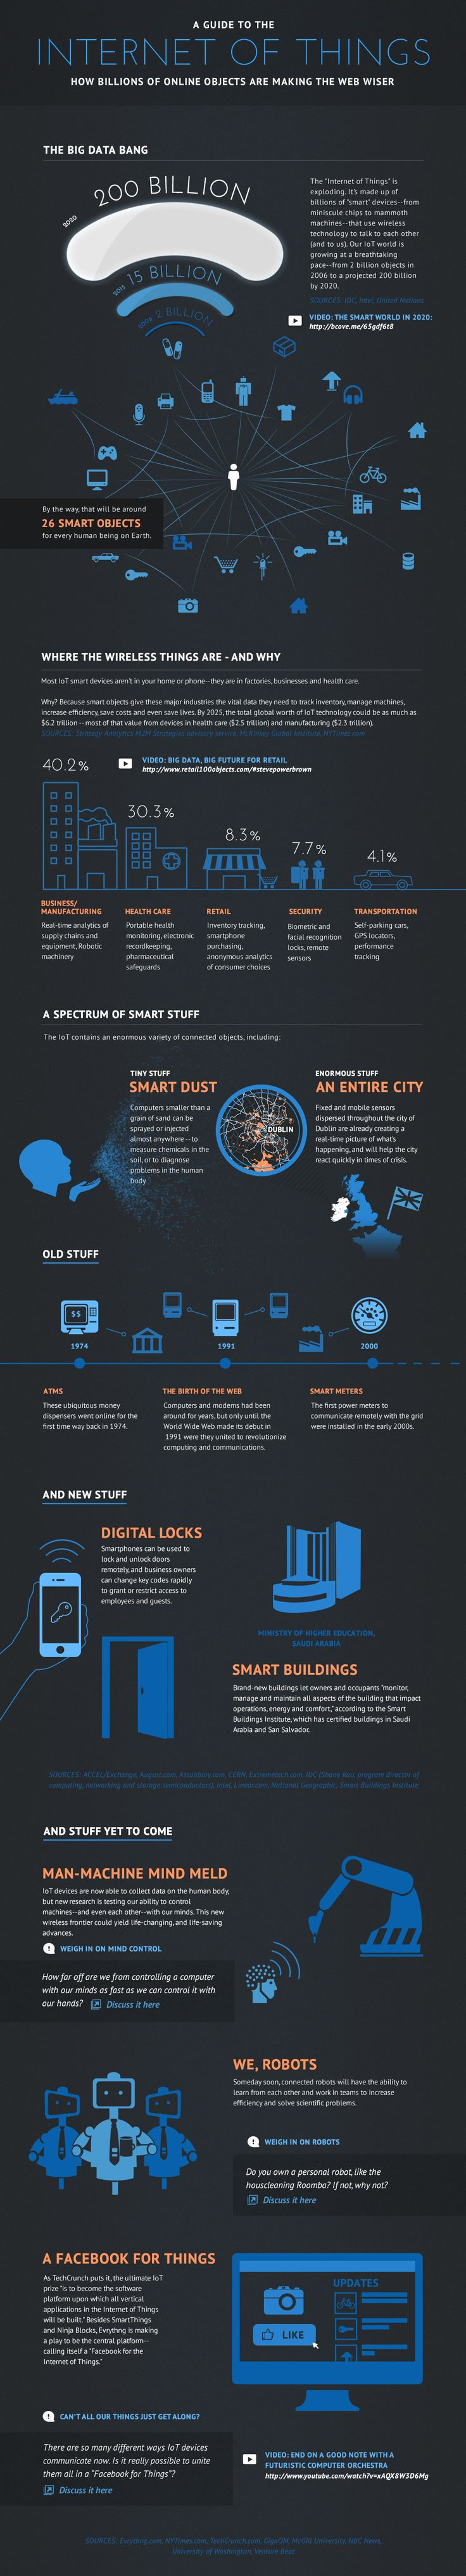 A Guide to the Internet of Things - Infographic - Data Science Central